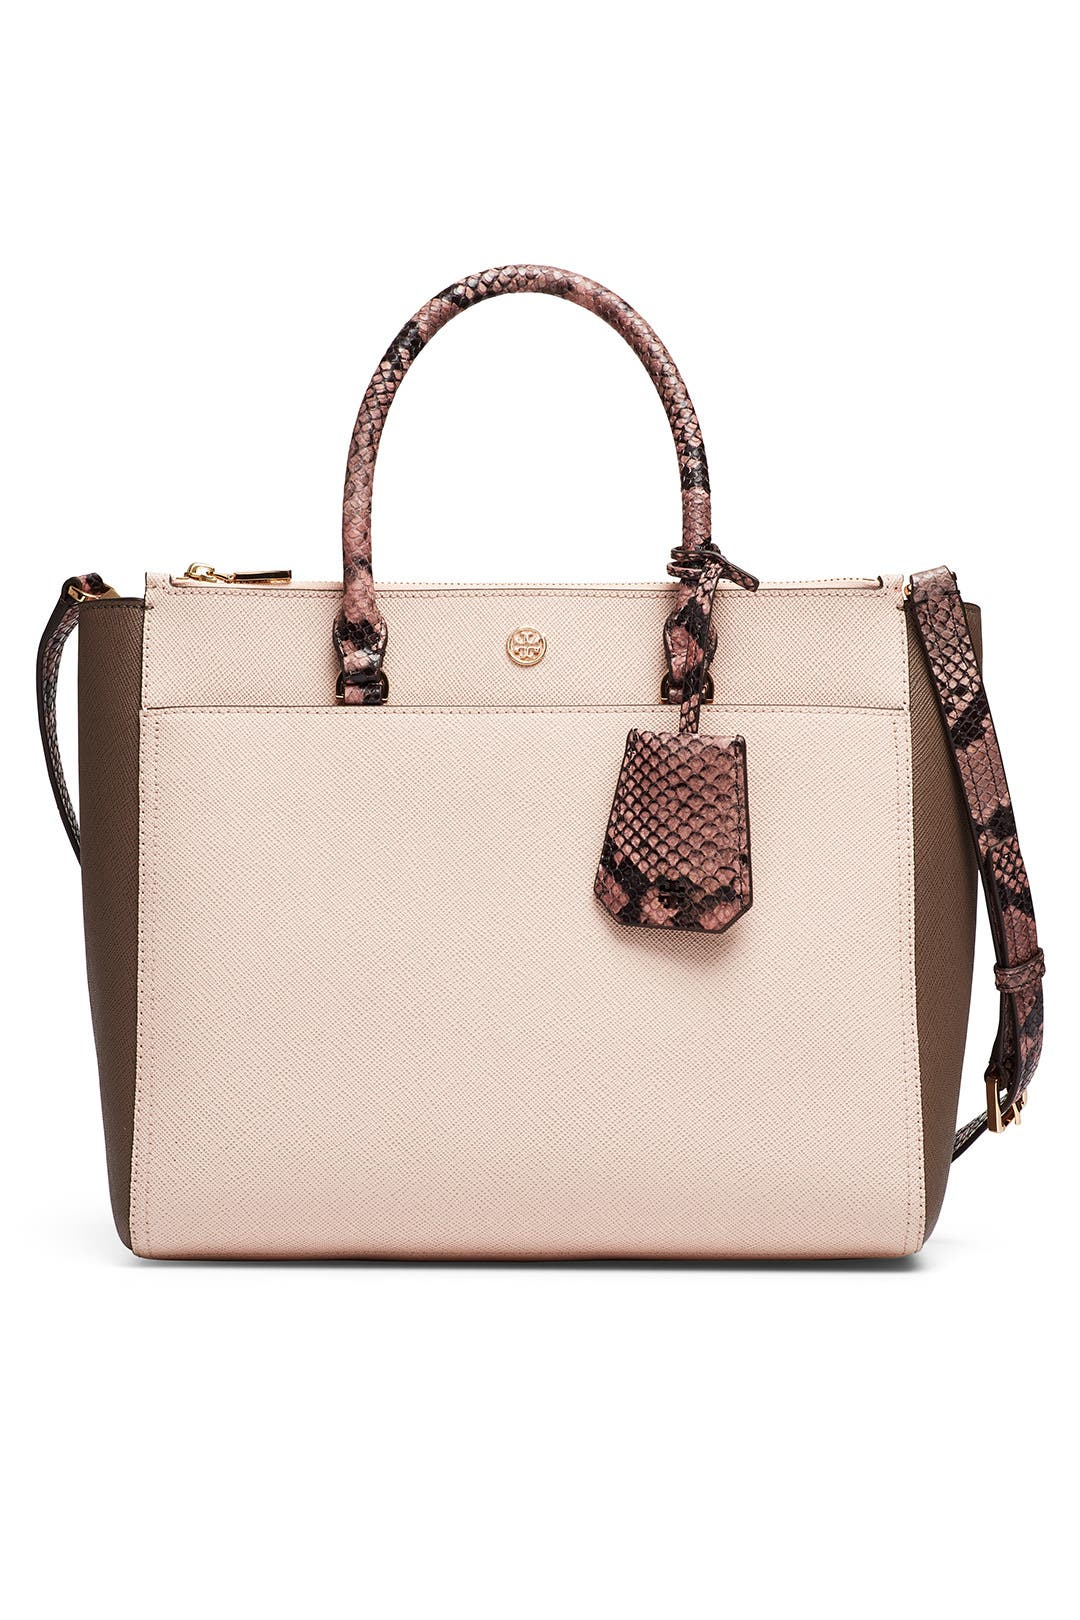 bbd71340dd Tory Burch Accessories. Read Reviews. Apricot Robinson Double Zip Tote